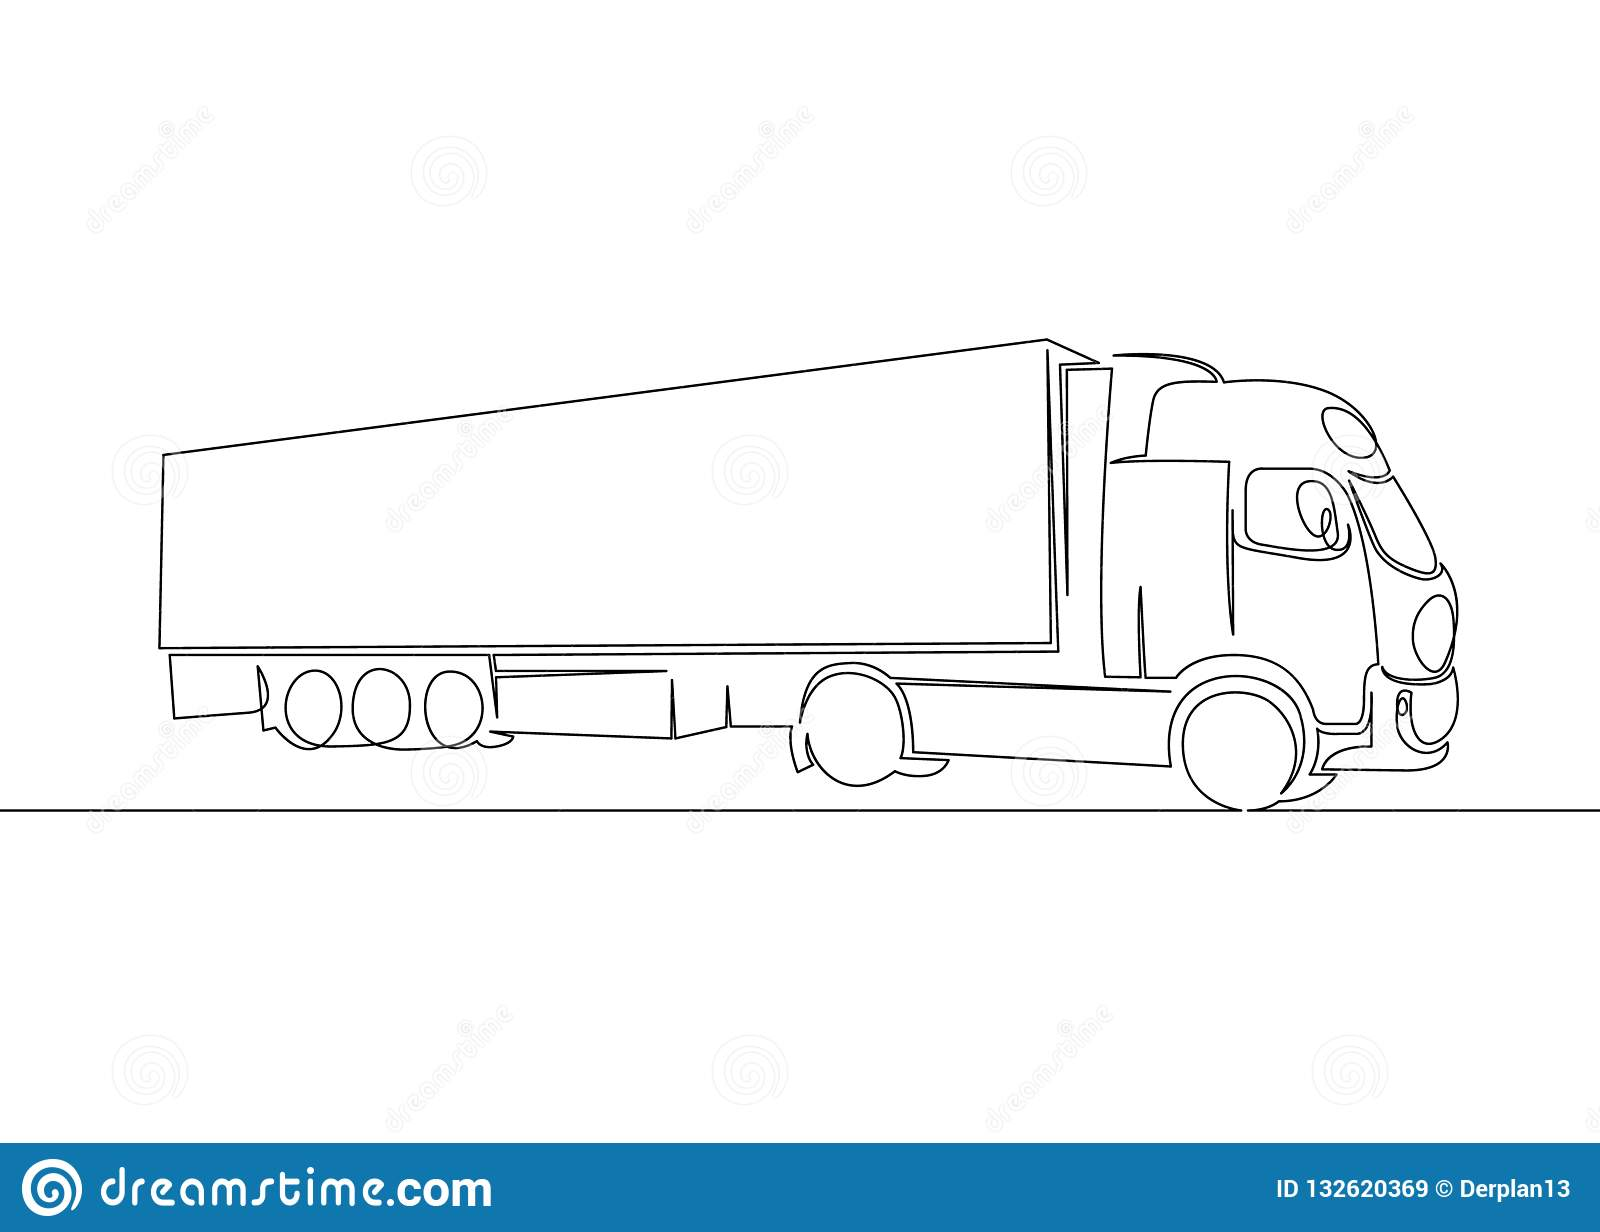 Truck With Cargo Trailer Driving Stock Vector Illustration Of Automobile Drawing 132620369